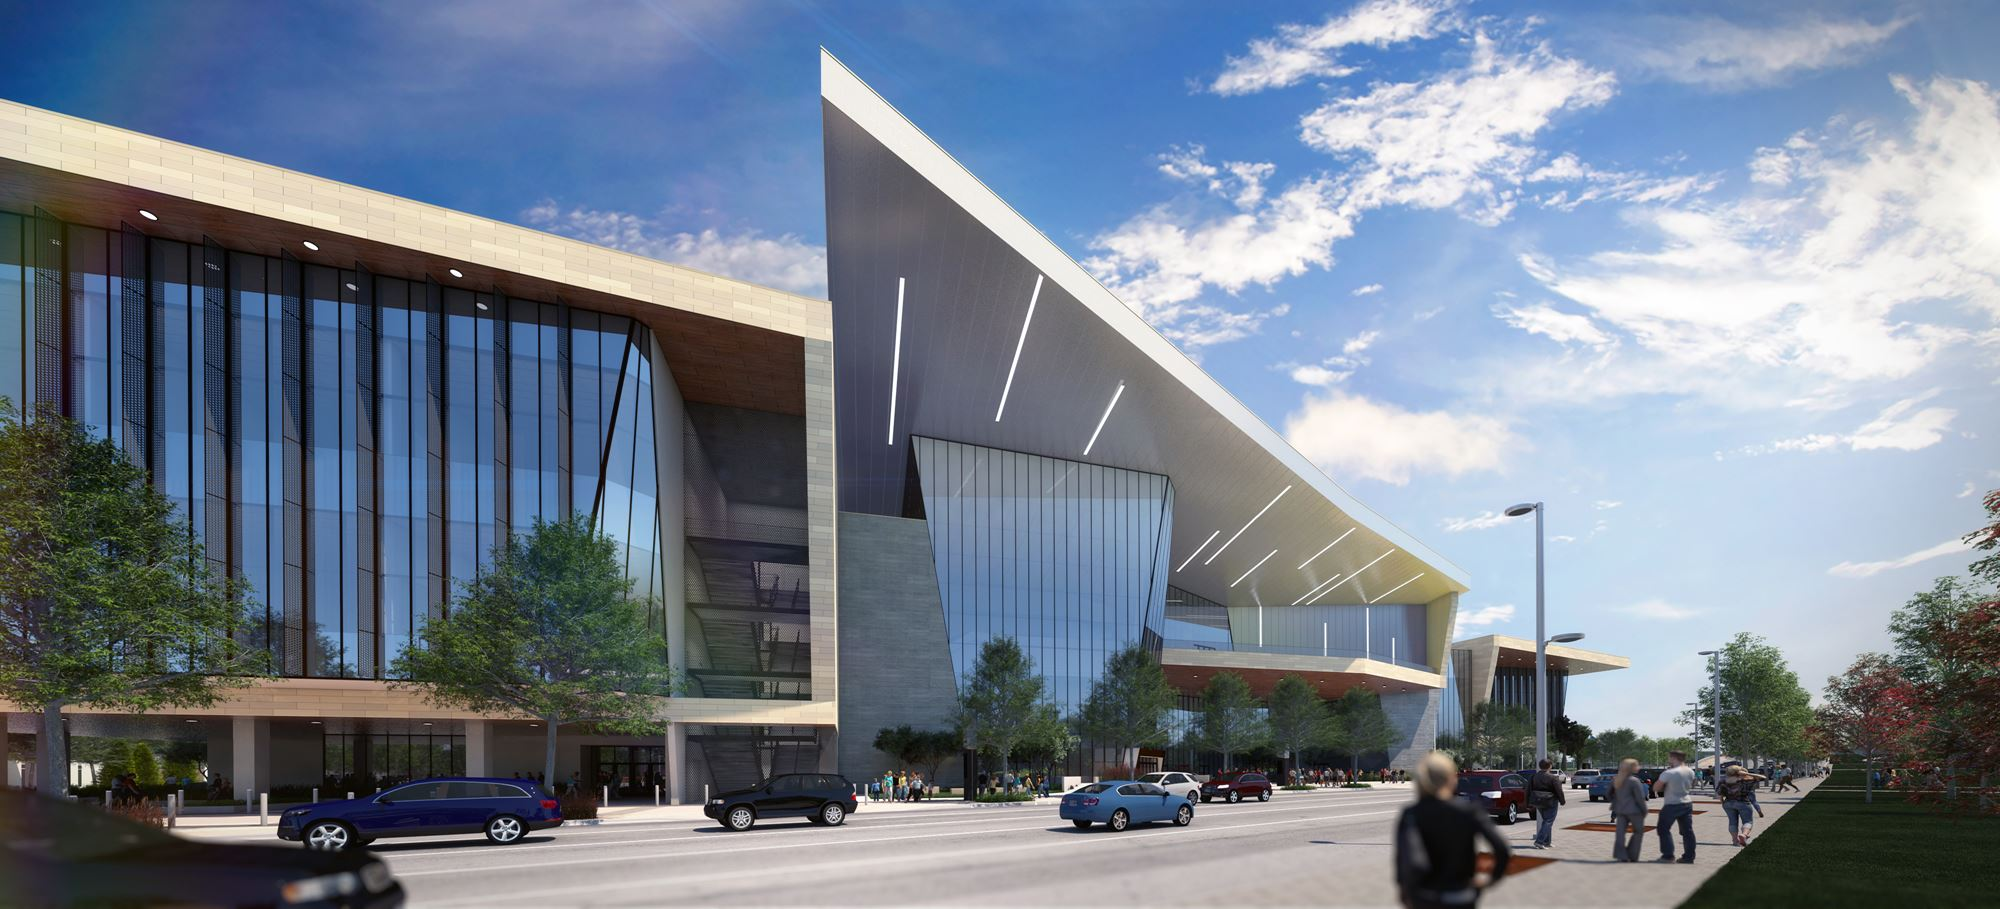 A preview of Oklahoma Citys new Convention Center shows